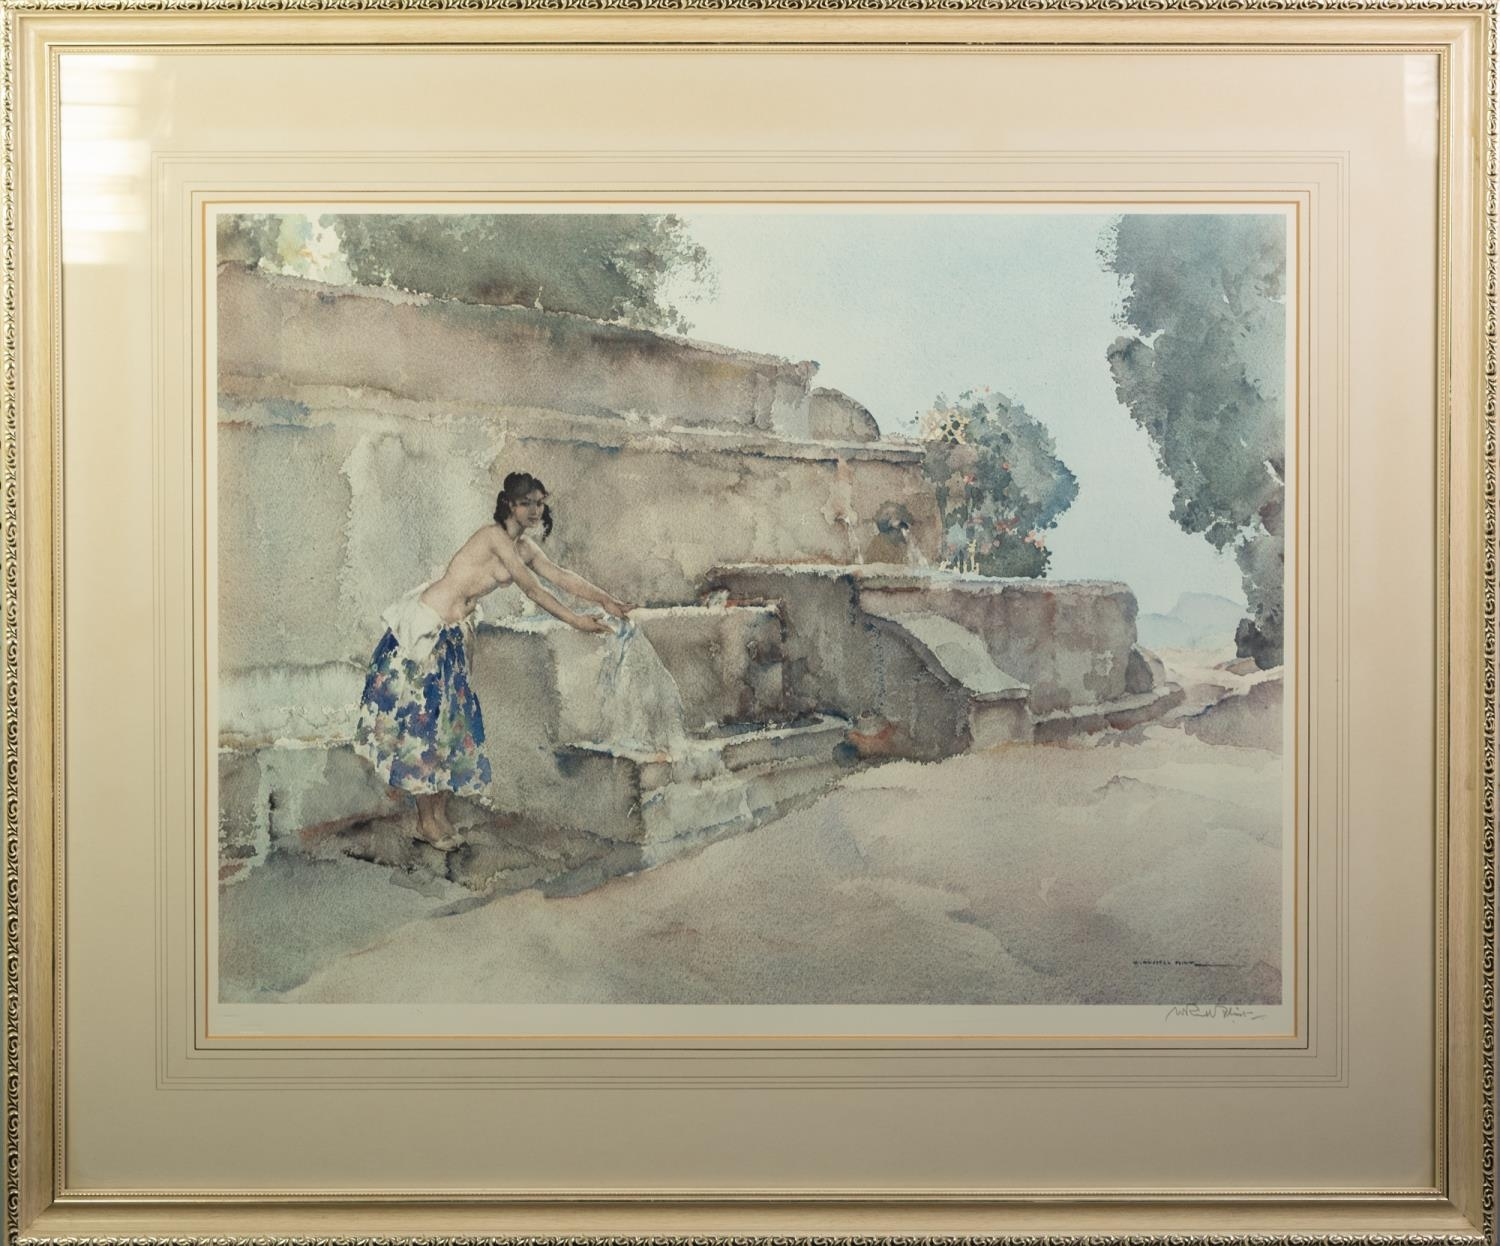 W. RUSSELL FLINT ARTIST SIGNED COLOUR PRINT Semi-clad female figure at a washing well Guild blind - Image 2 of 6